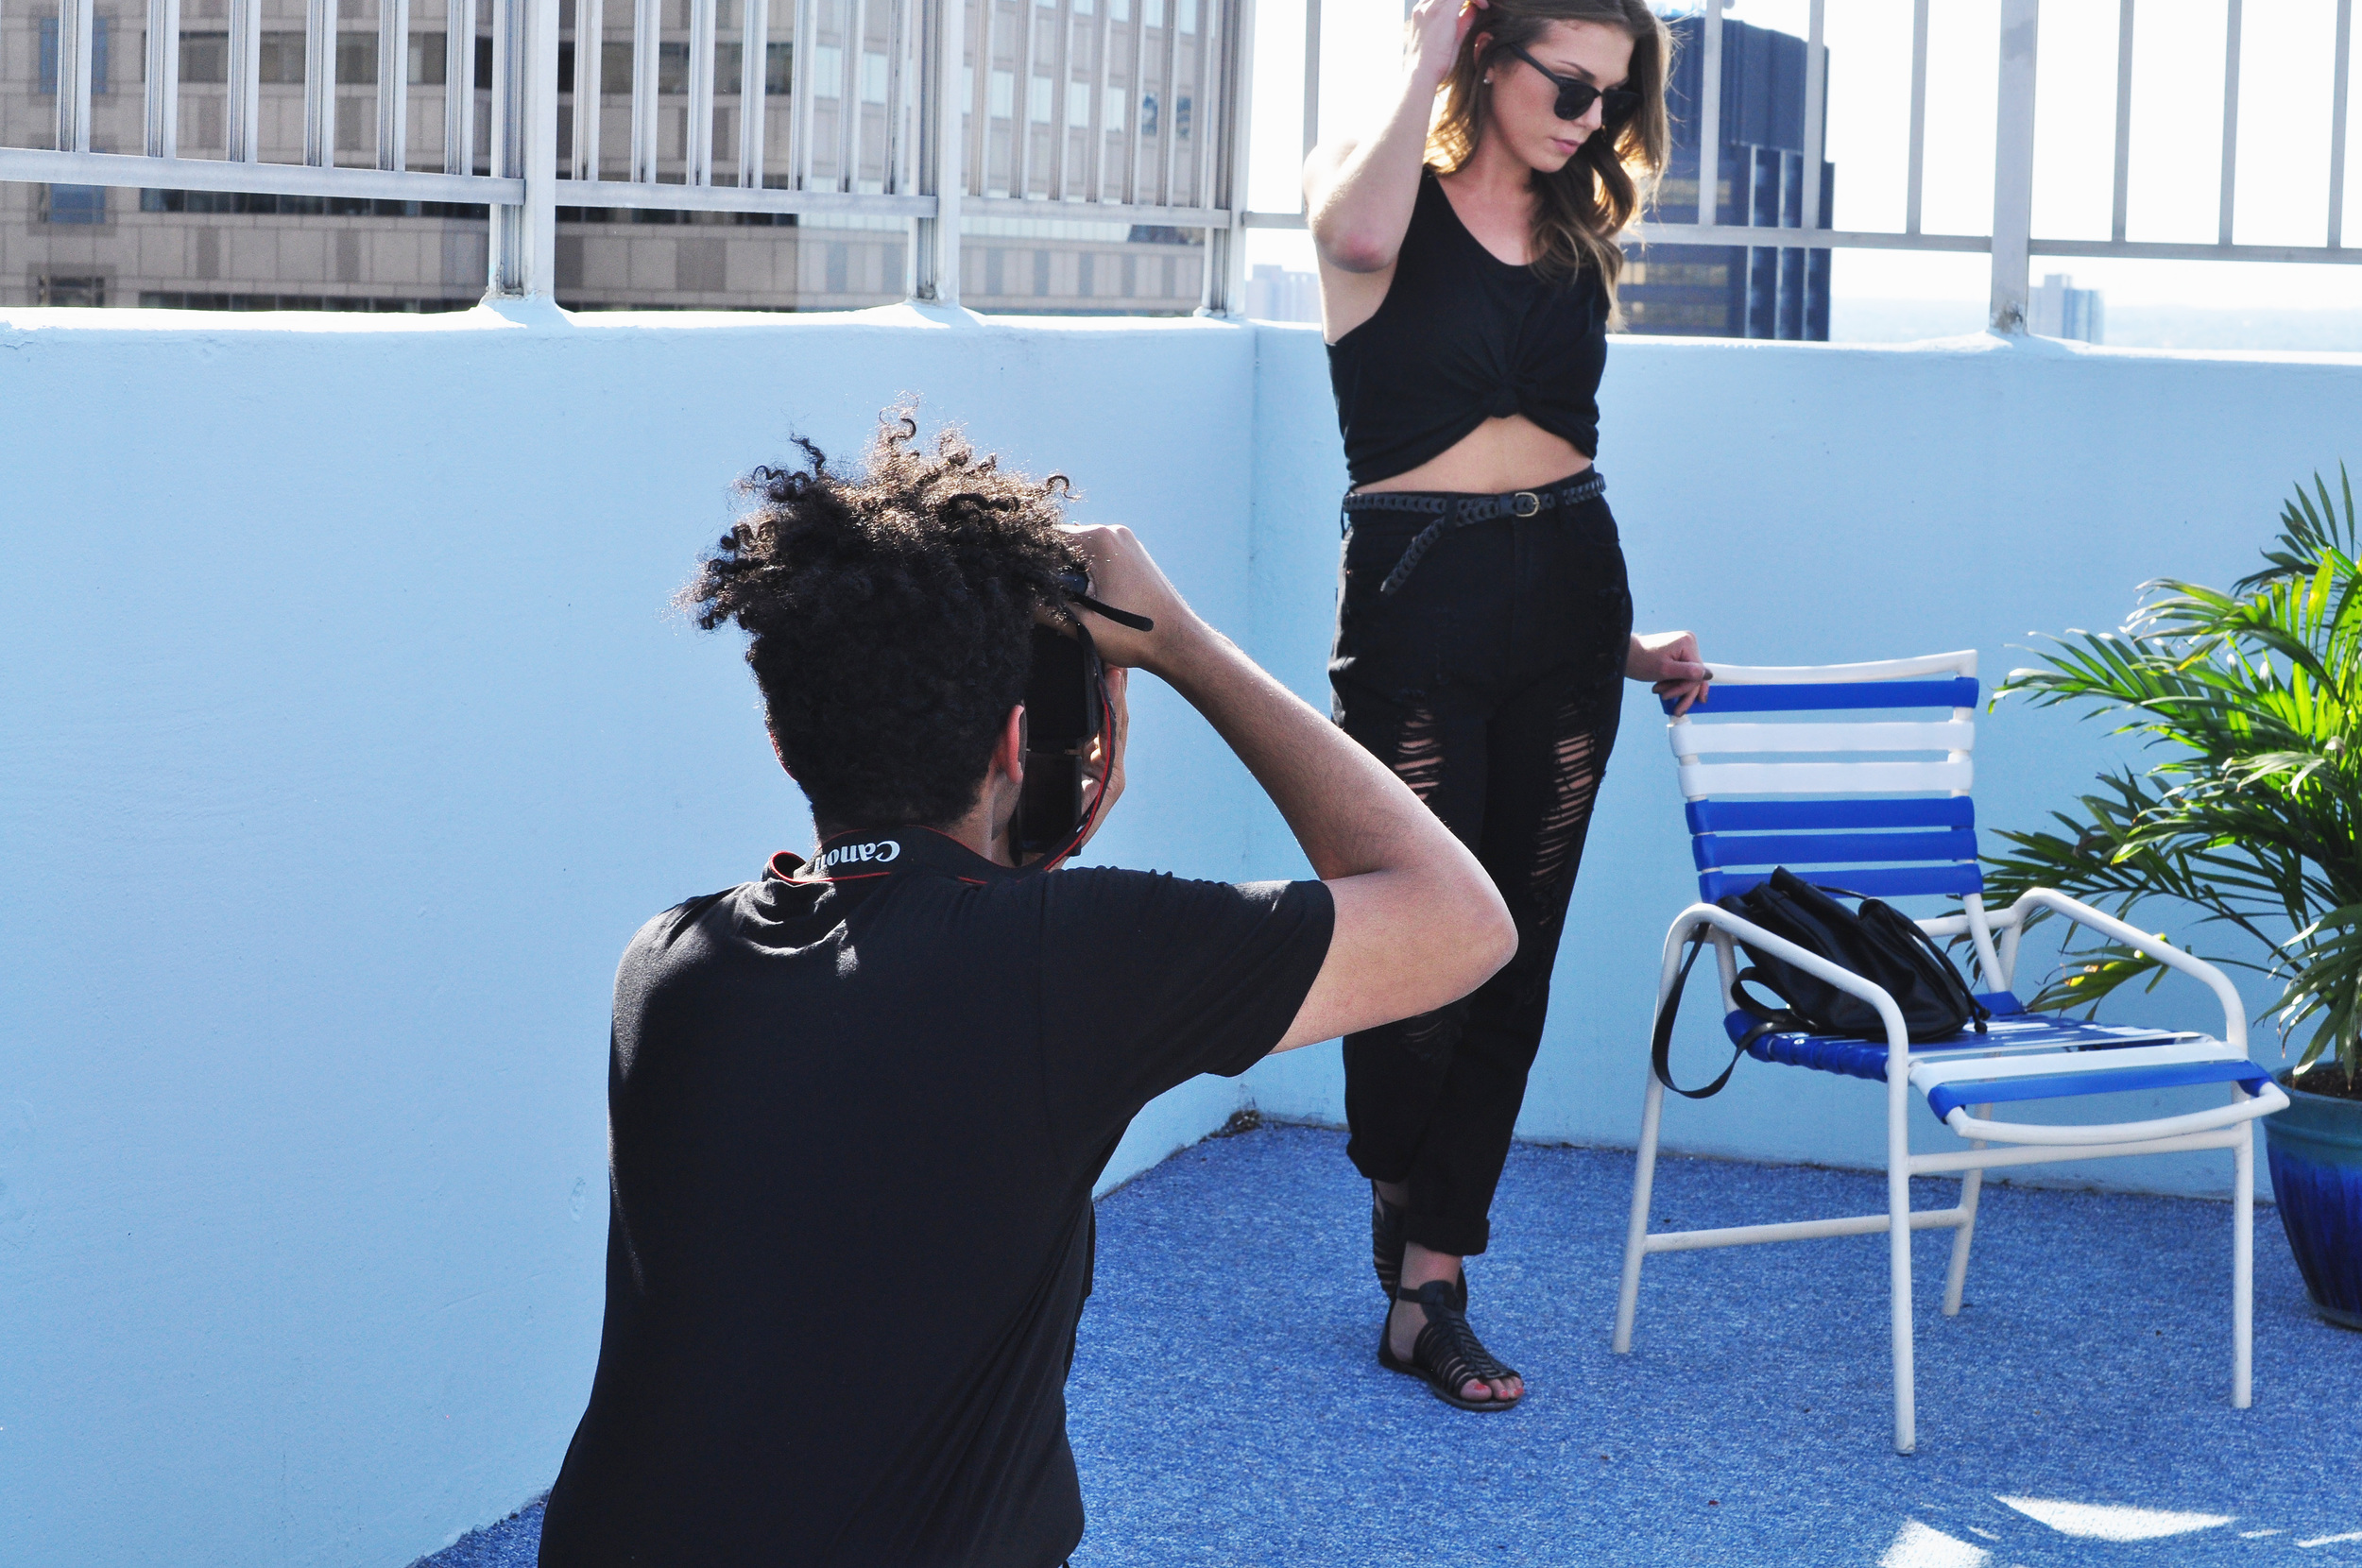 Michael Wolever shooting Abby Boyle for Thread Society  (Photo by Shannon Adolt)